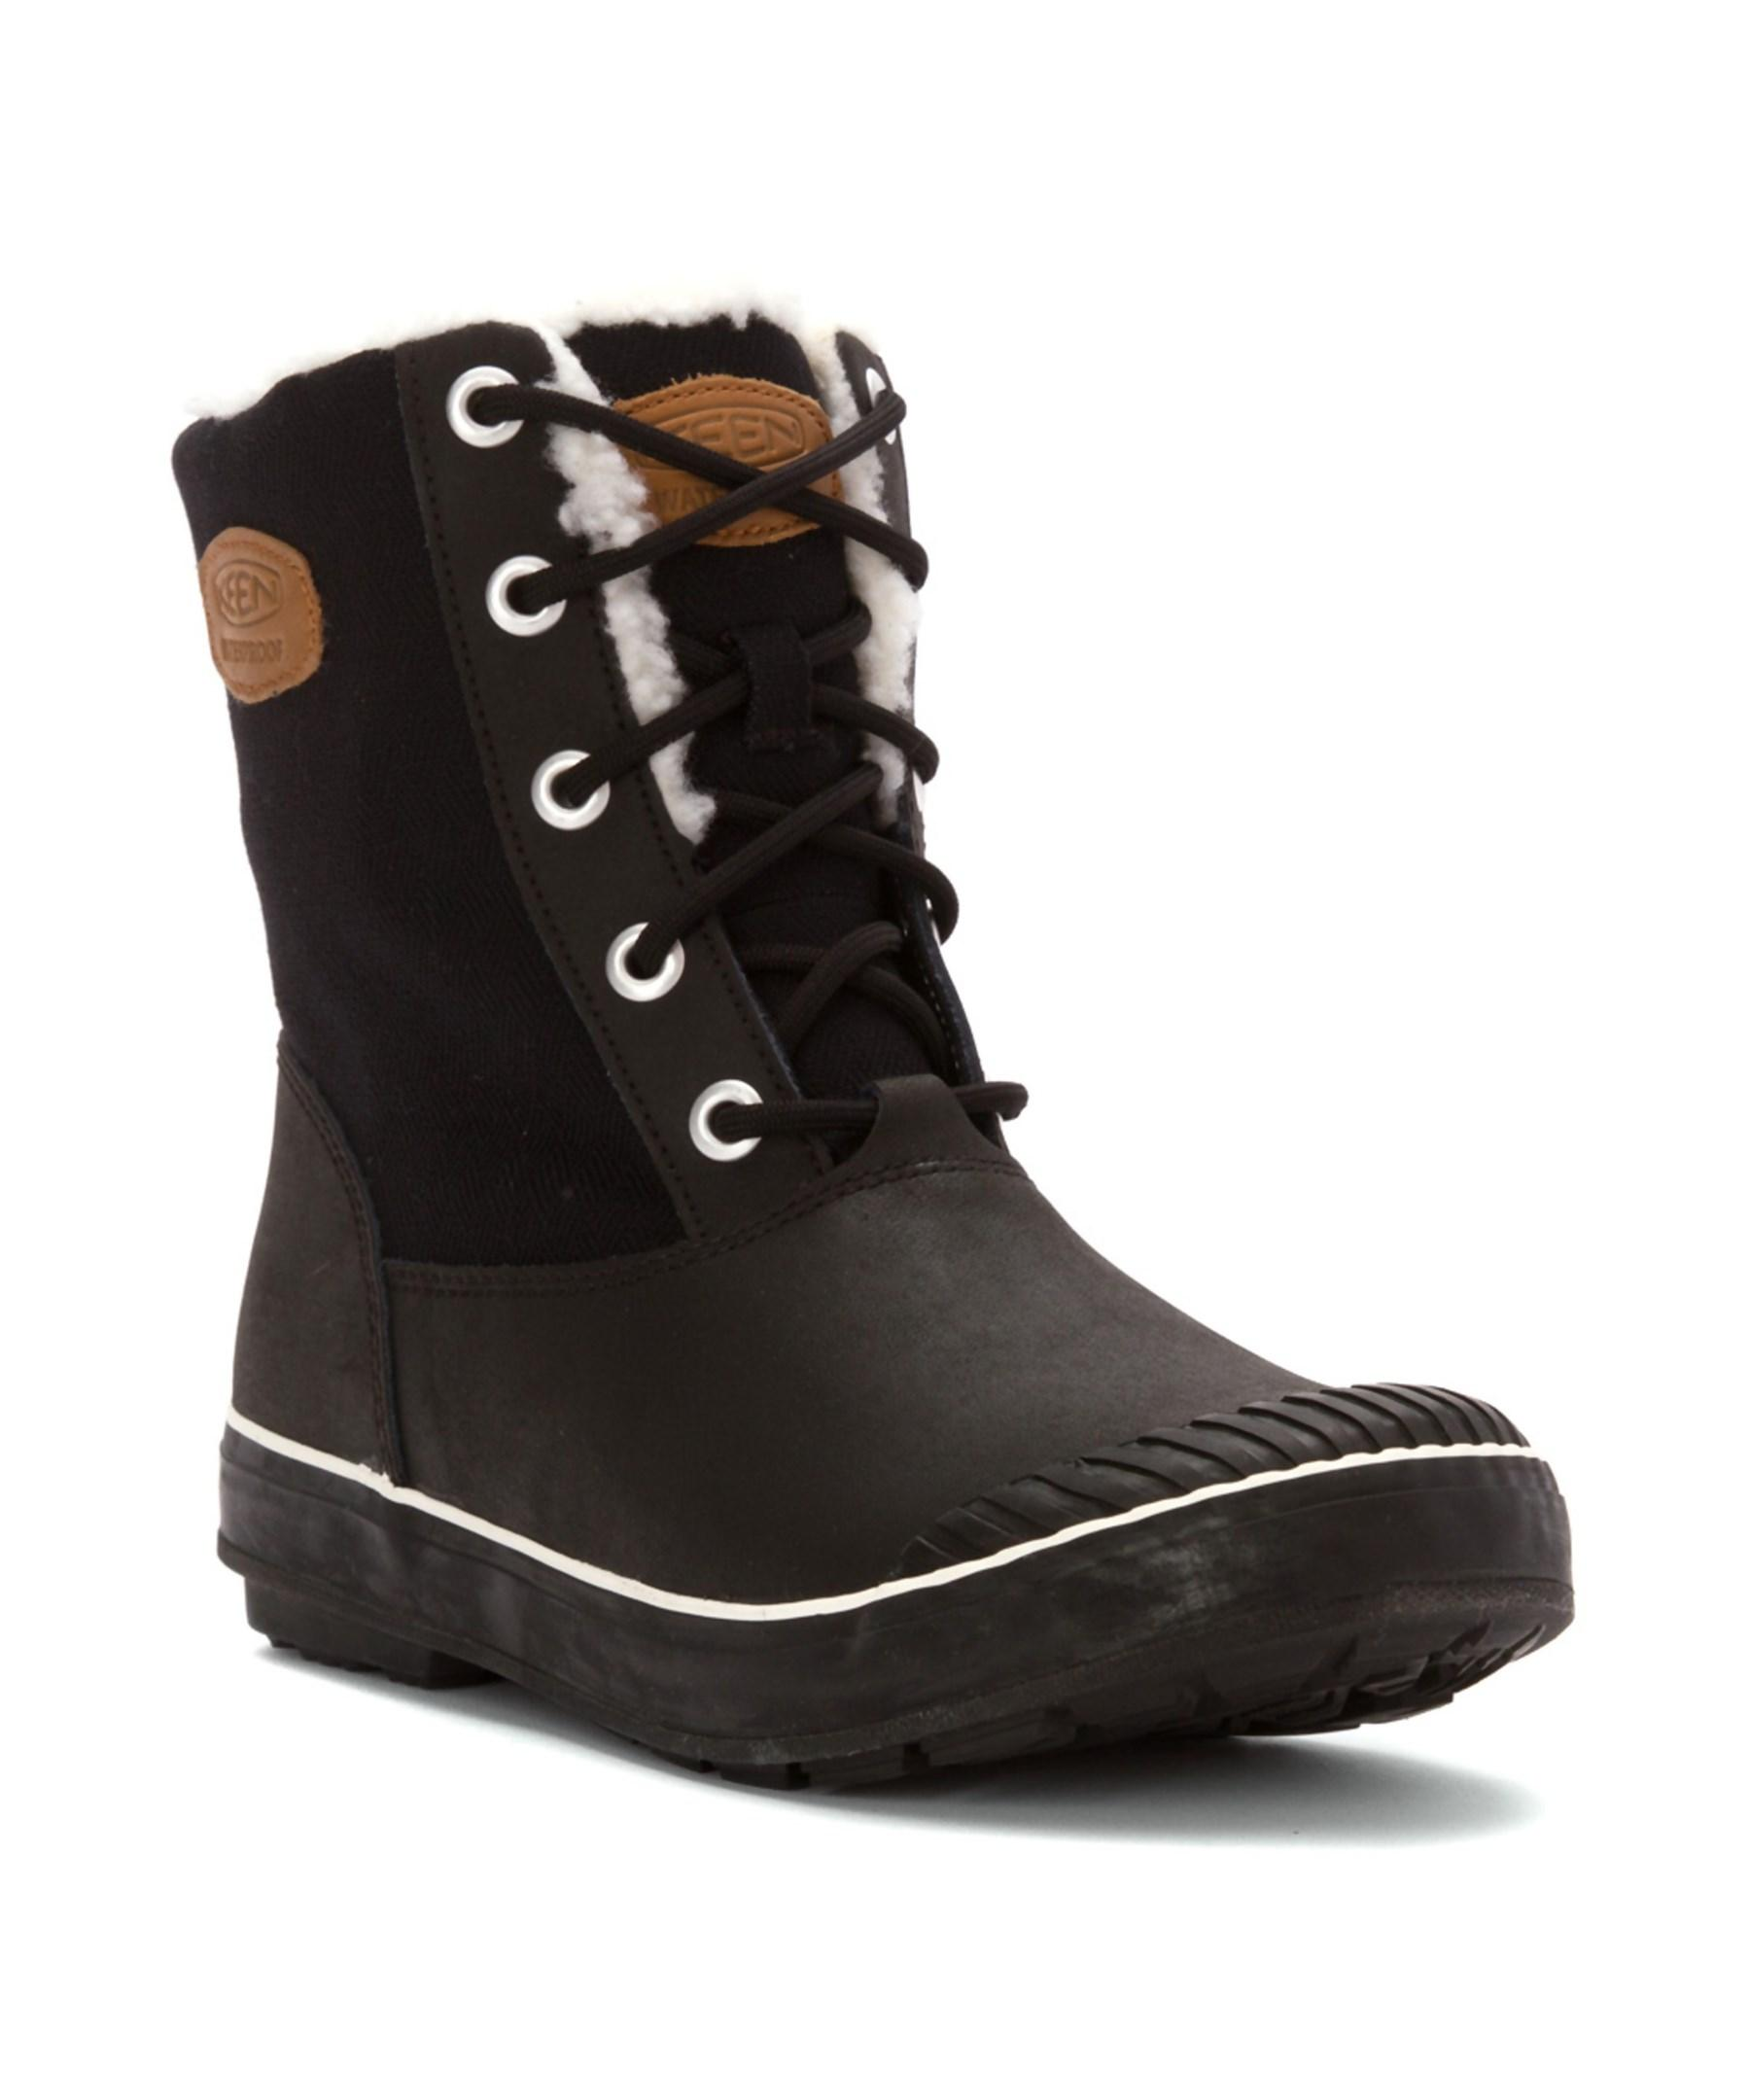 keen s elsa boot wp boots in black lyst